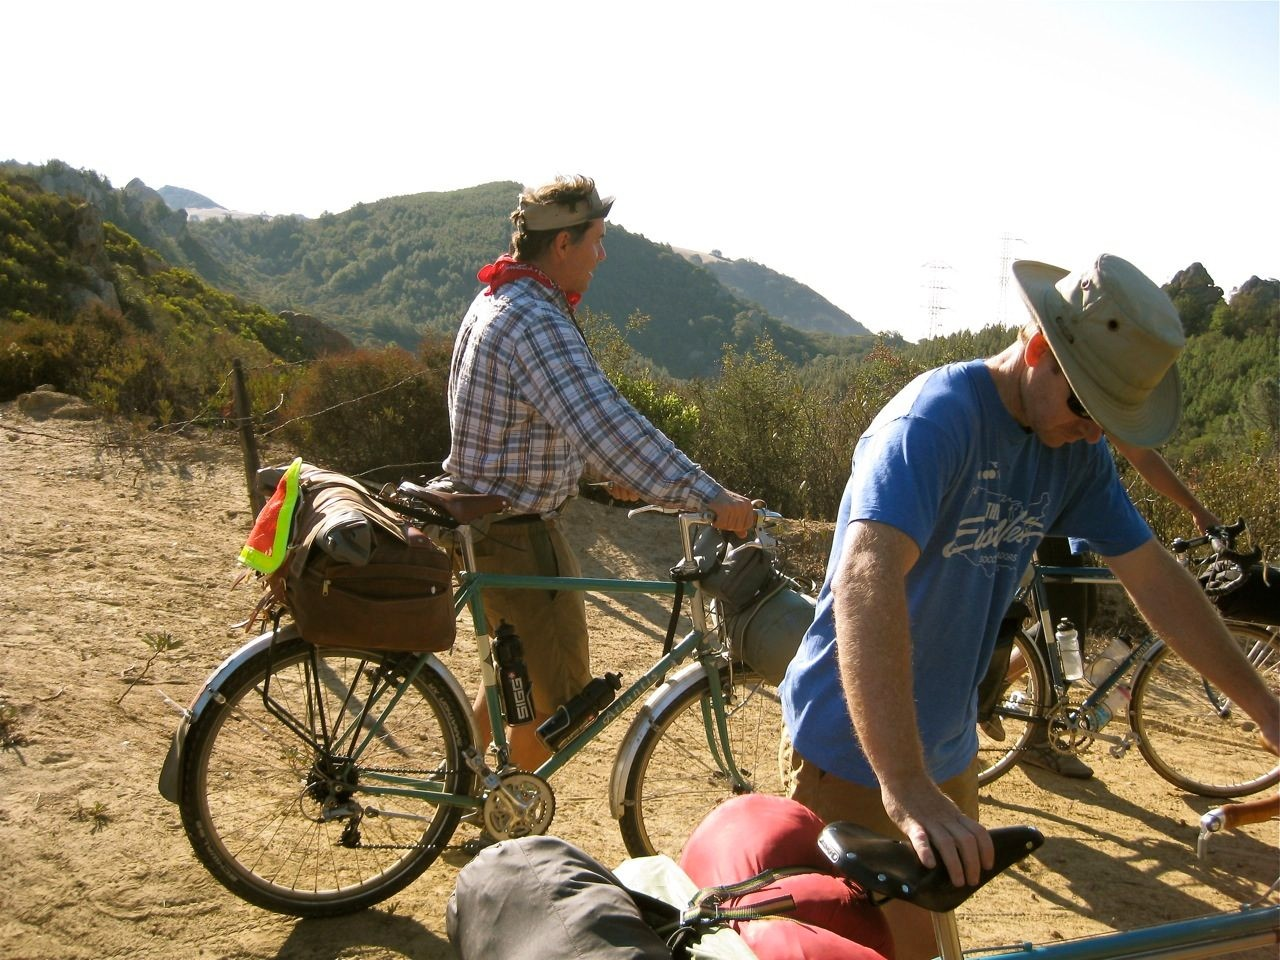 Petersen (L) enjoying some bike camping near Mt Diablo in Northern California.